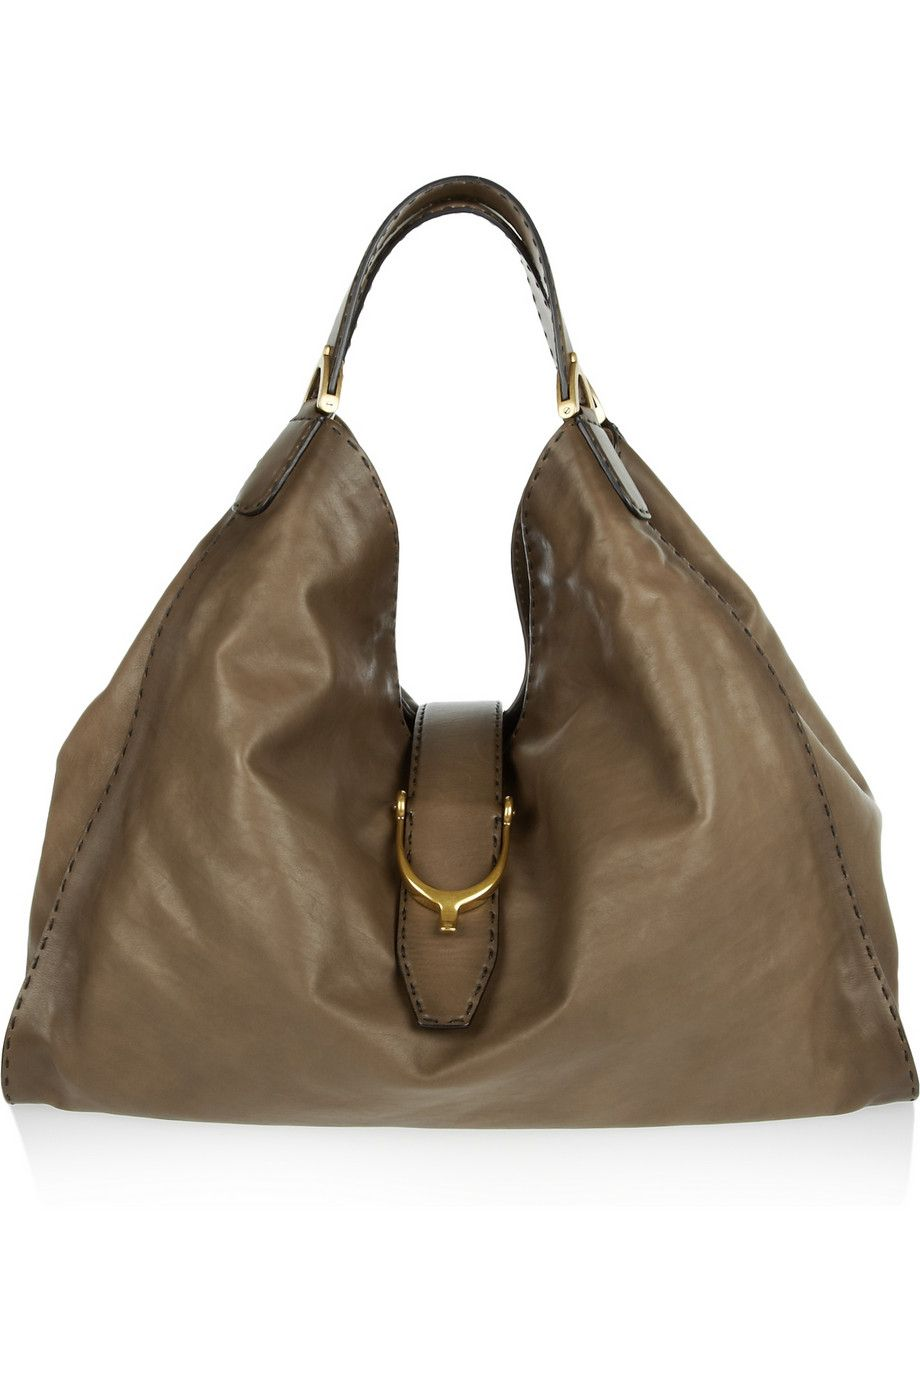 f5177f1f24579c Gucci   Stirrup leather hobo bag   Totes MaGotes   Bags, Gucci ...